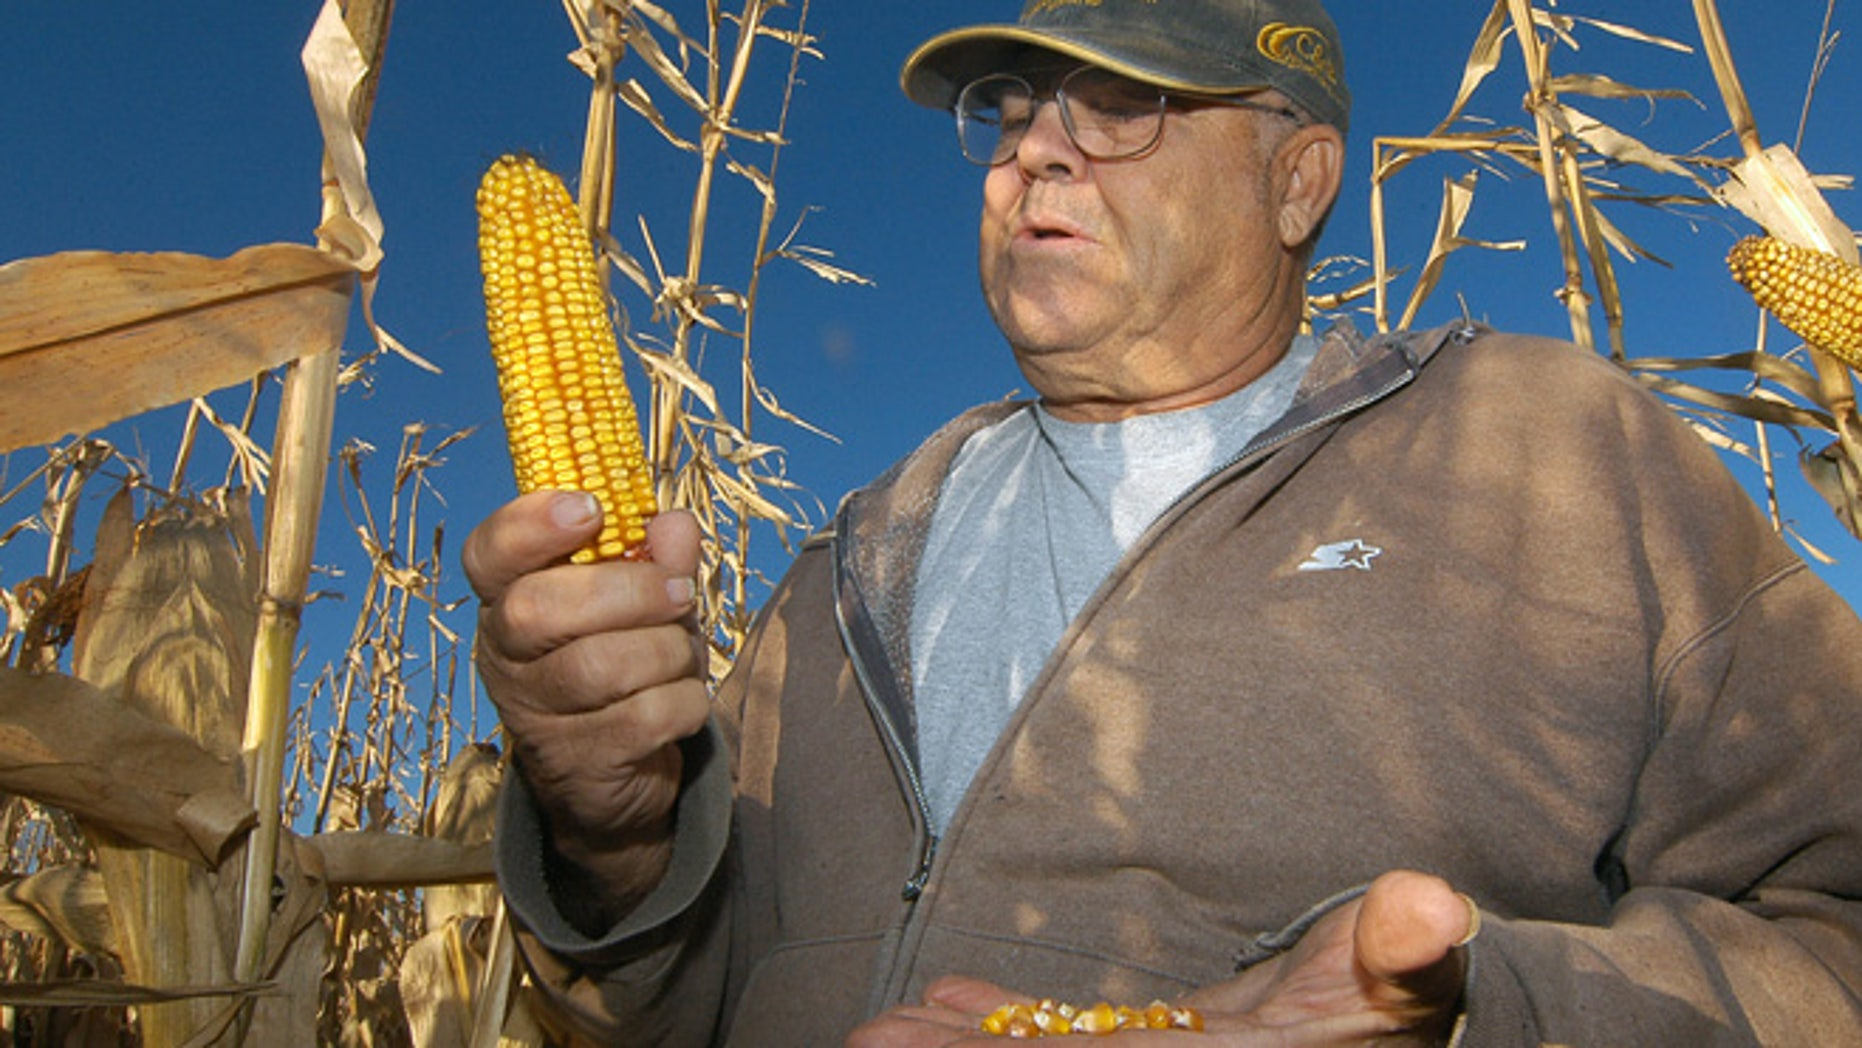 In this Oct. 24, 2013, photo Robert Malsom checks corn in one of his fields near Roscoe, S.D. Malsam nearly went broke in the 1980s when corn was cheap. So now that prices are high and he can finally make a profit, he's not about to apologize for ripping up prairieland to plant corn.